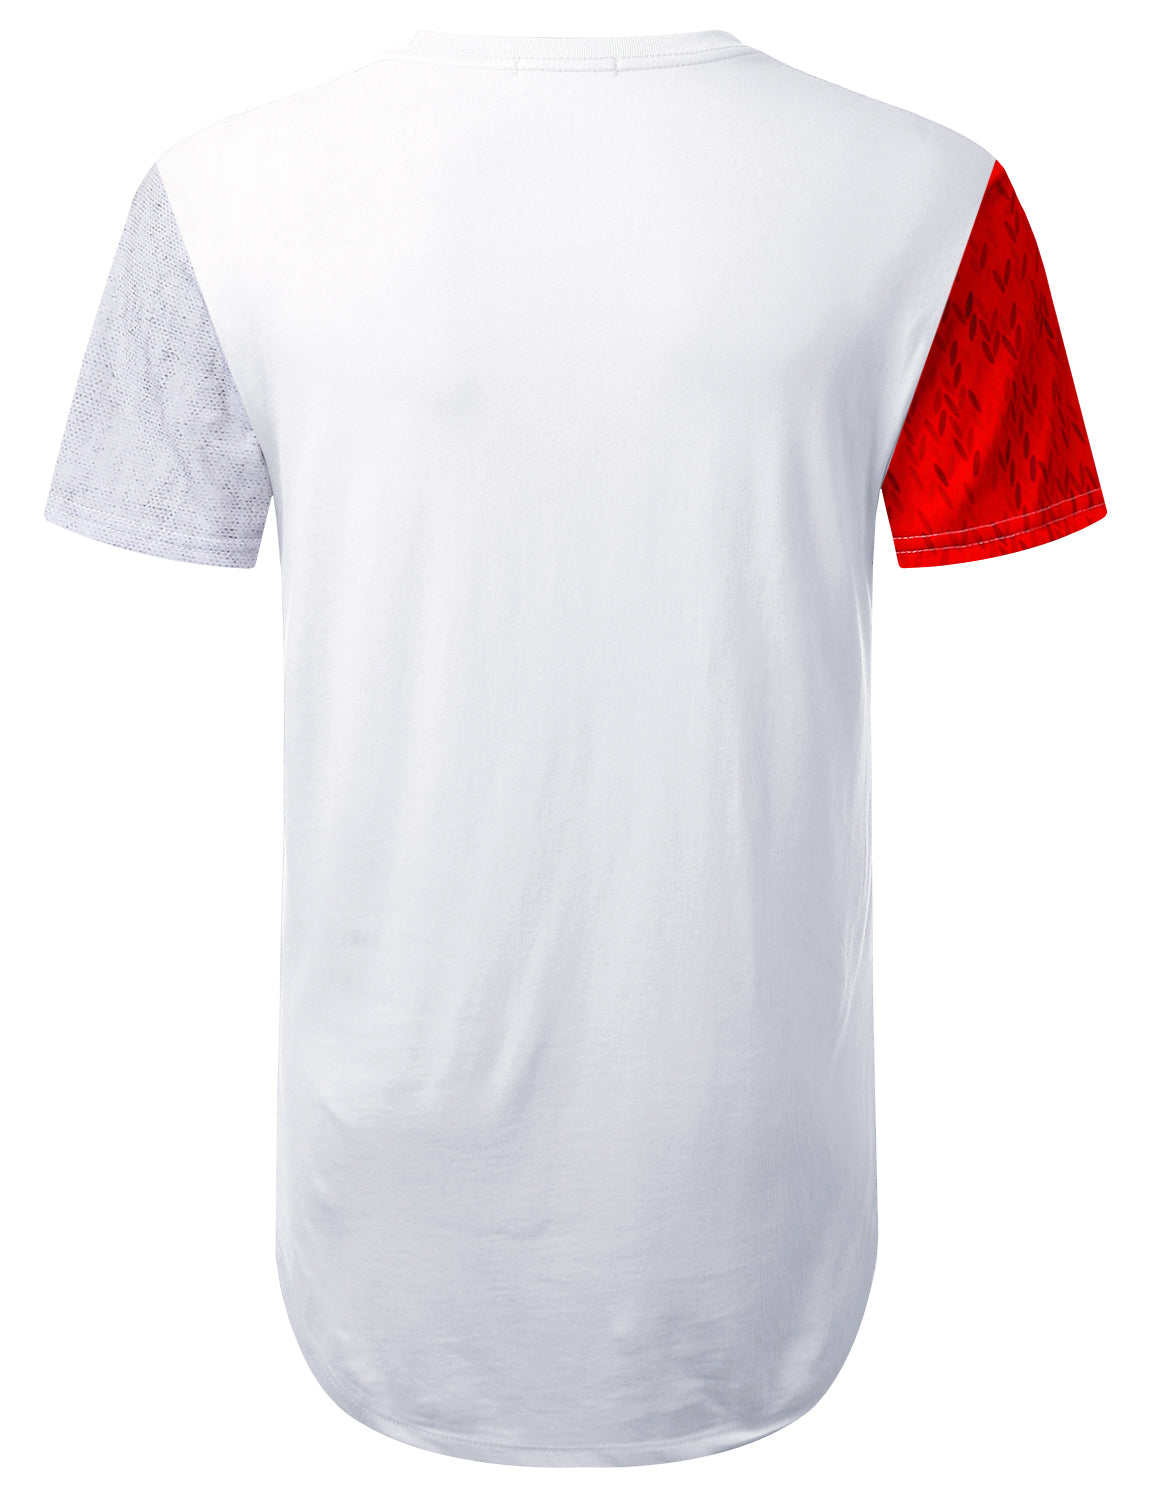 WHITE Variety Colorblock Longline T-shirt - URBANCREWS